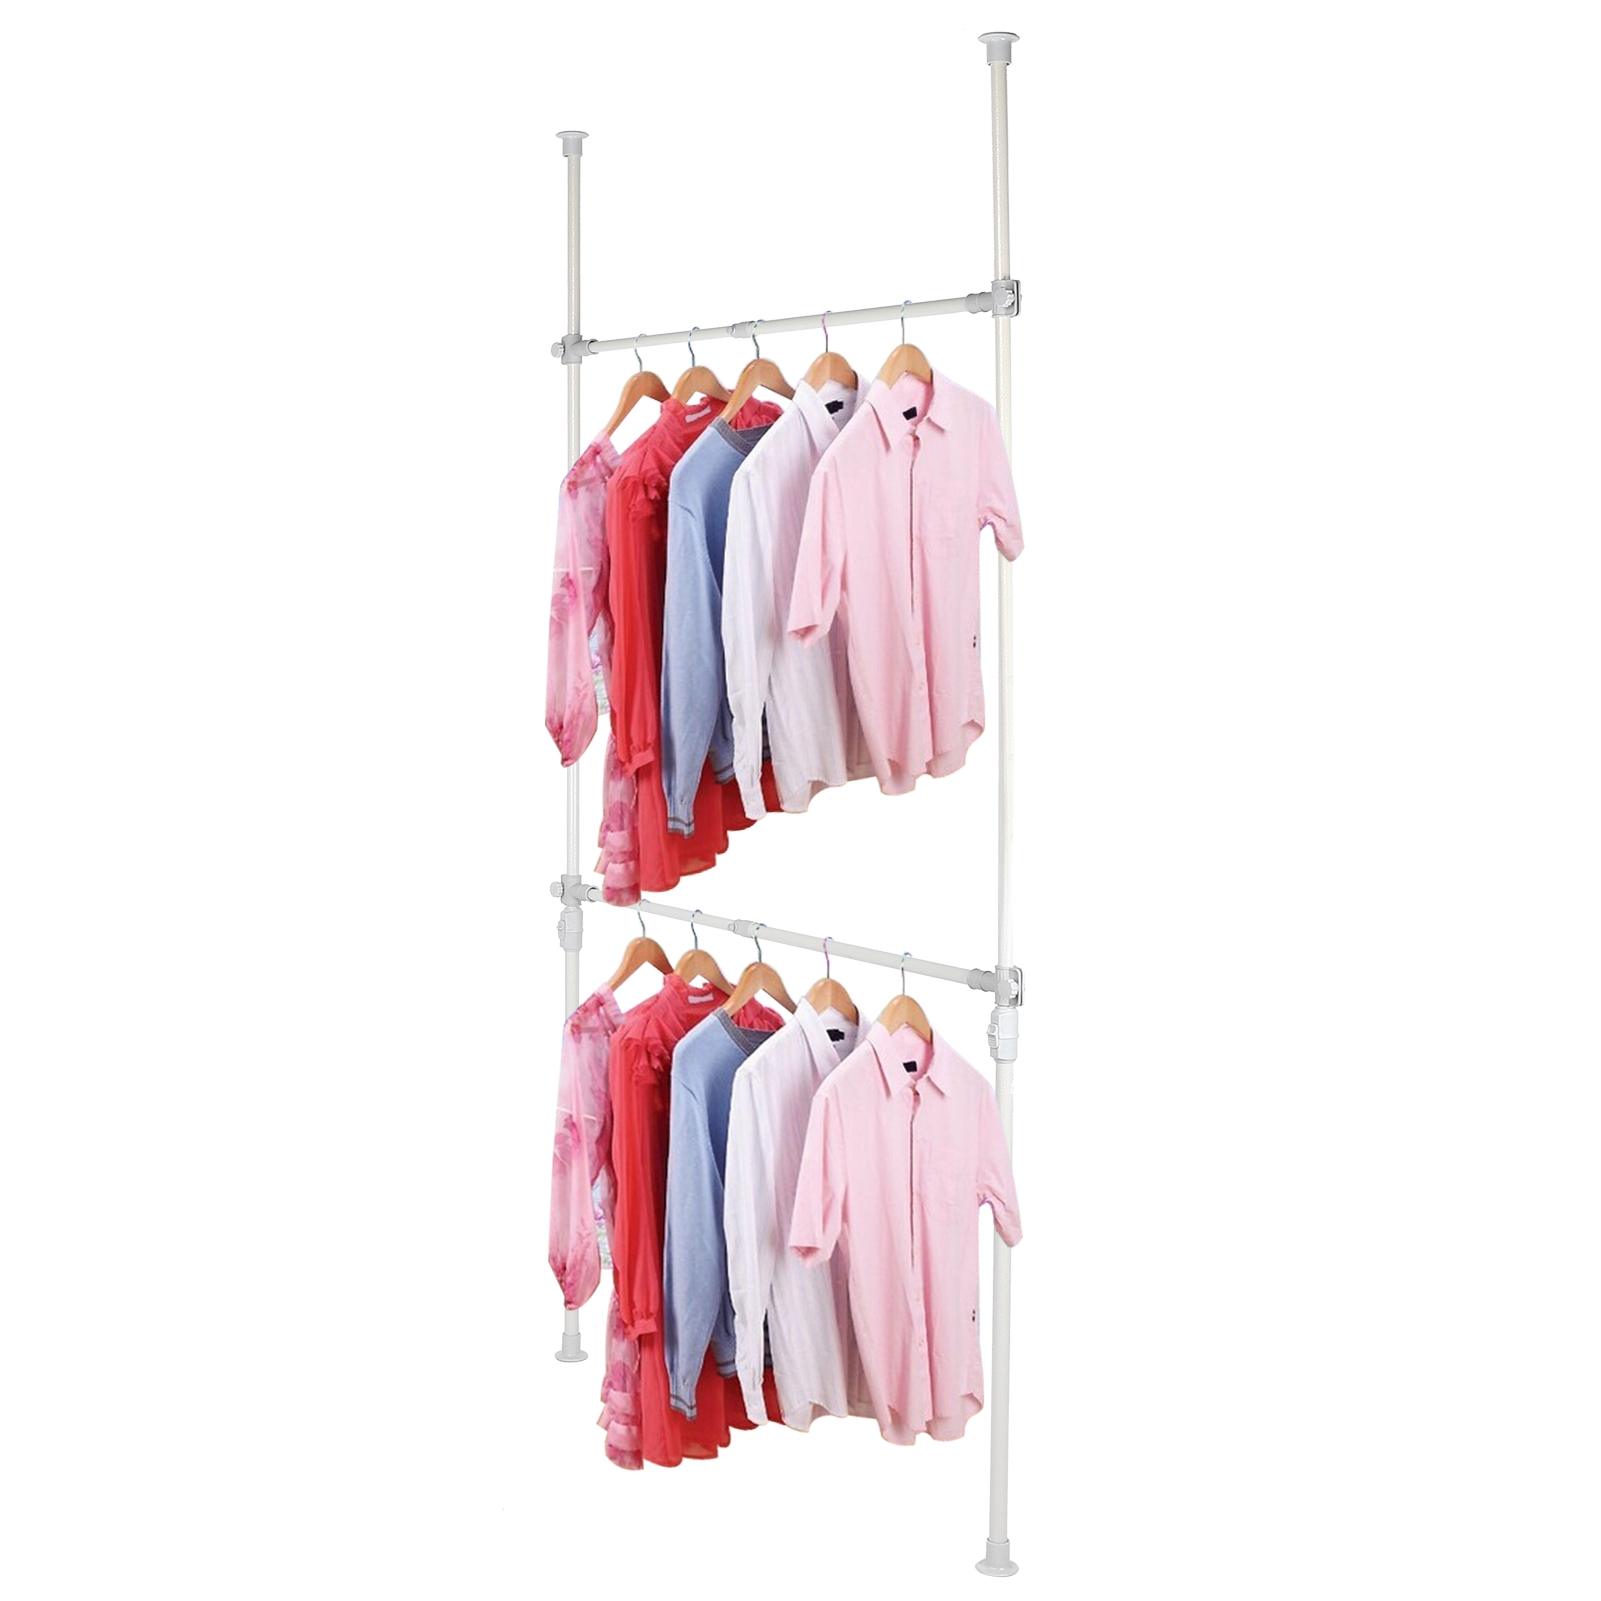 dilwe telescopic clothes hanger multi functional adjustable hanging rail garment rack from floor to ceiling household accessories clothes rack